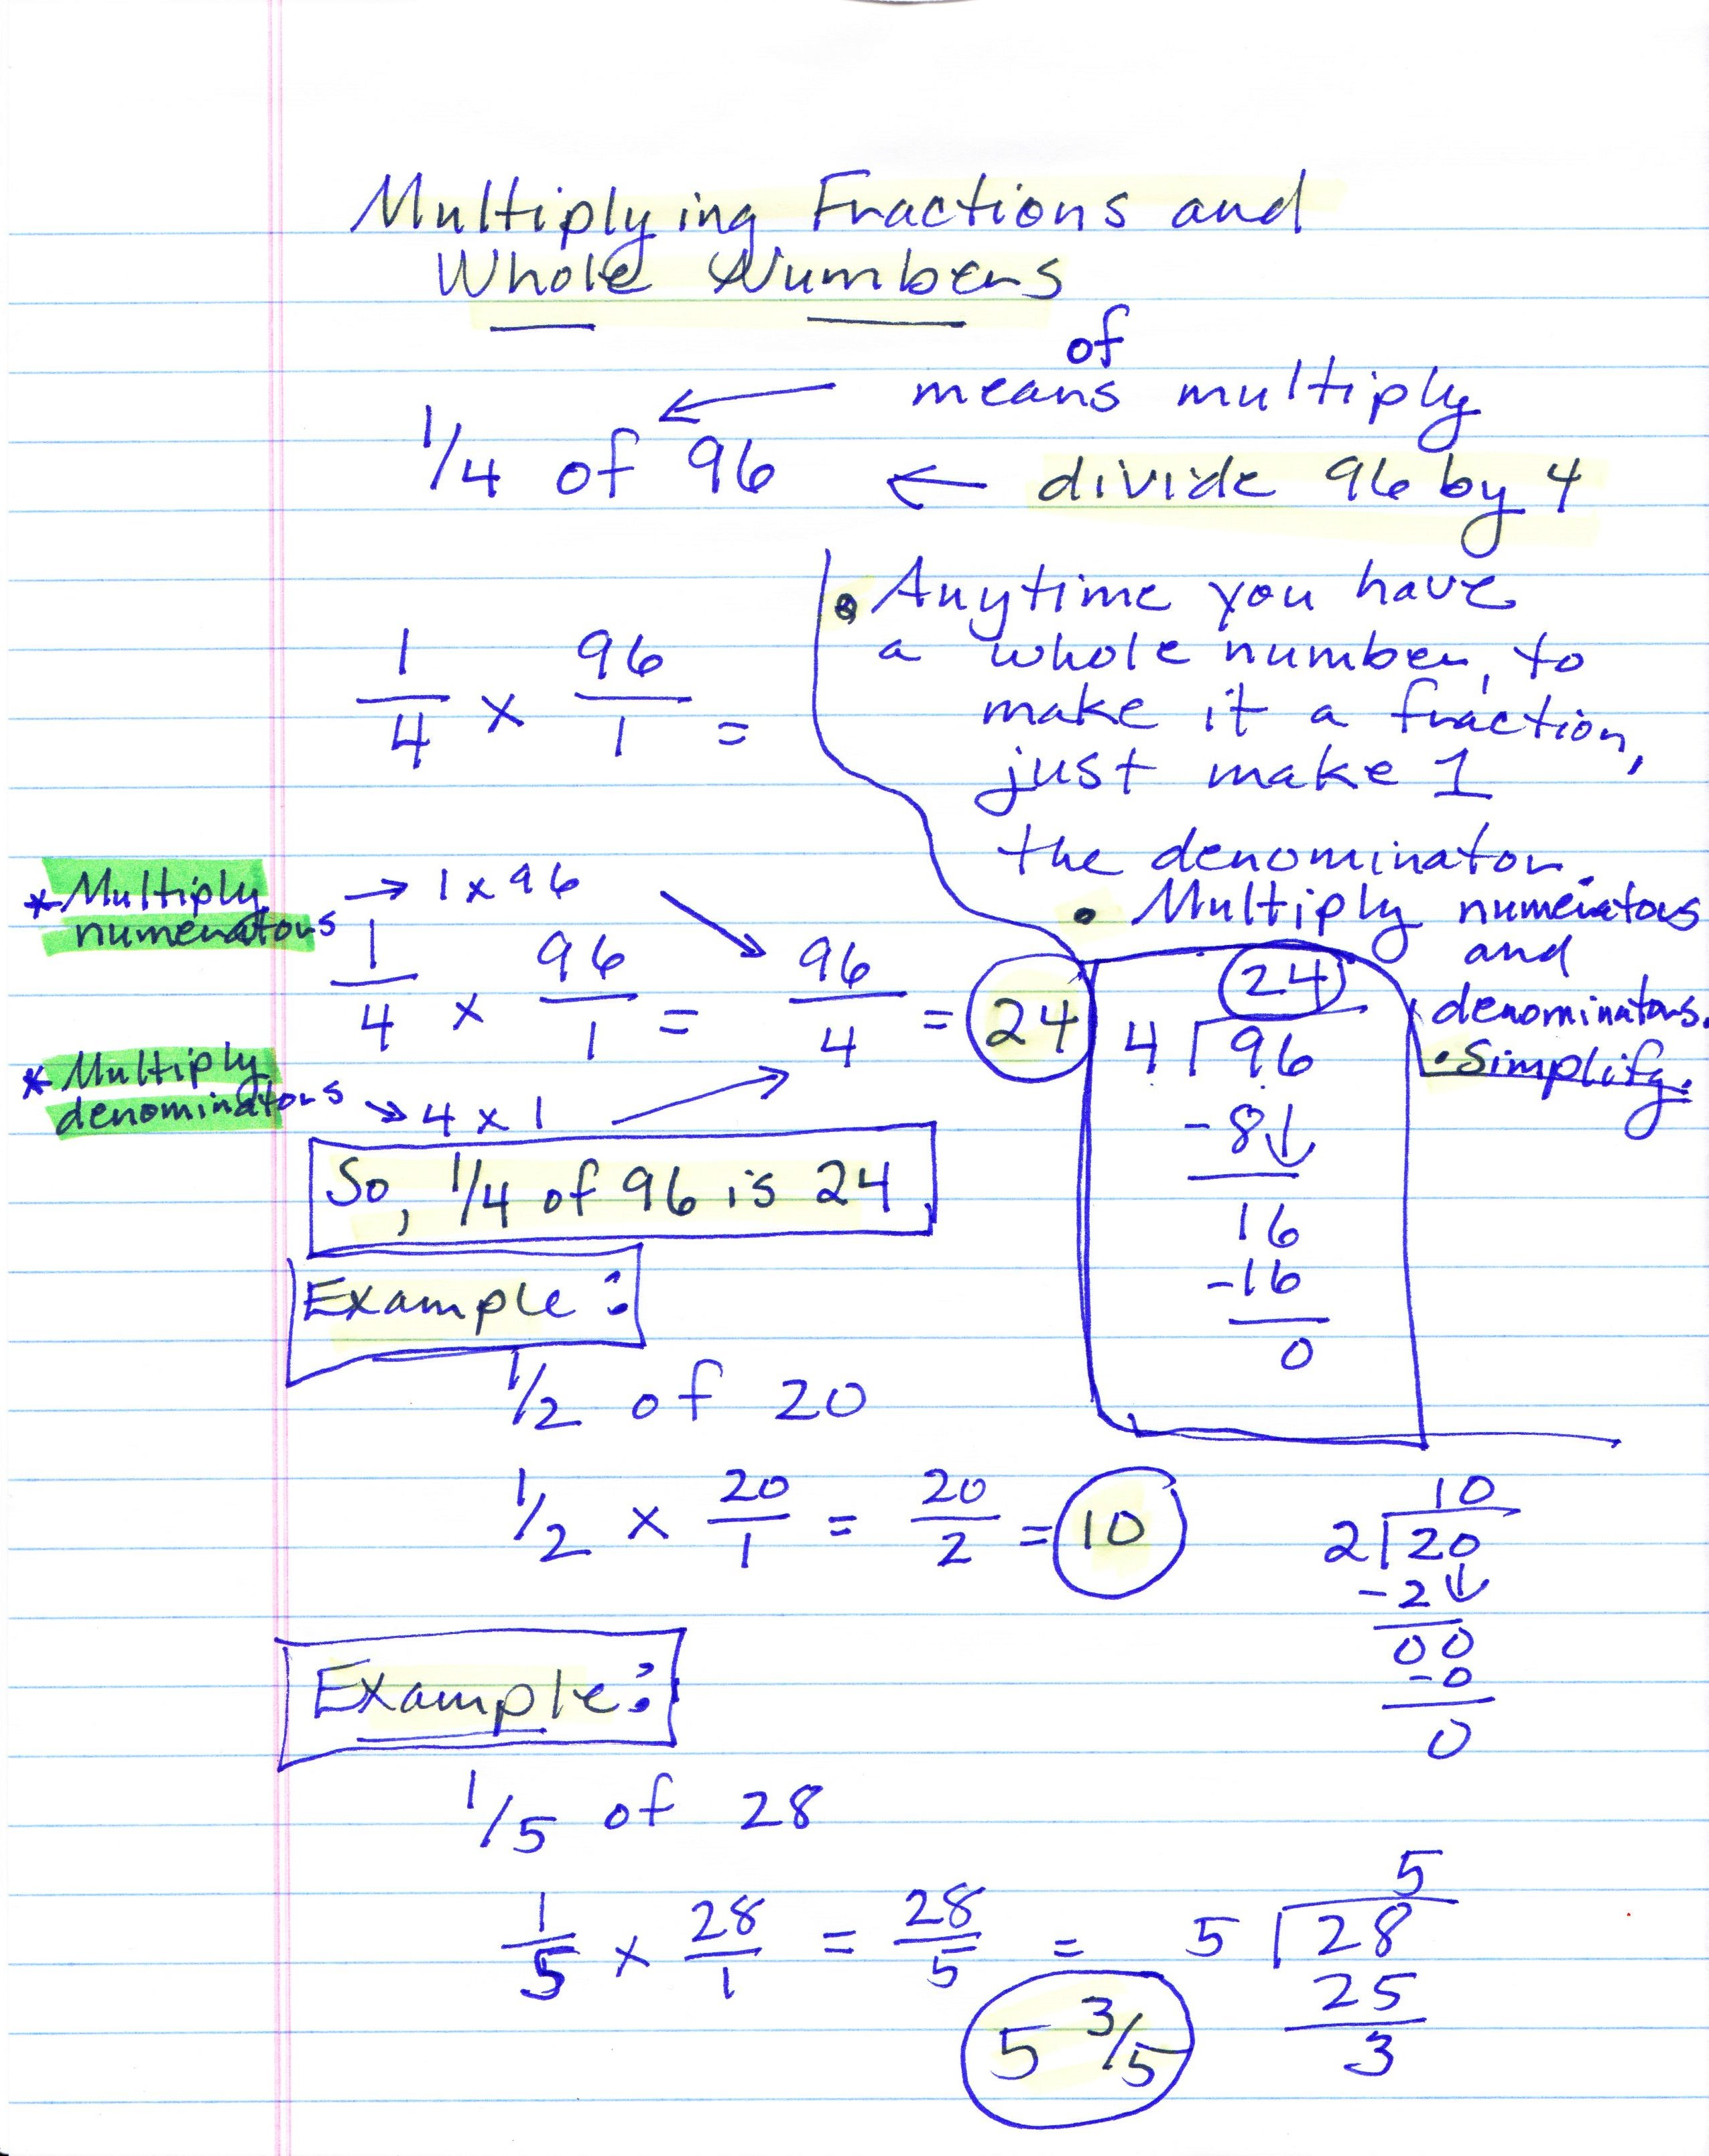 worksheet How To Multiply Fractions With Whole Numbers mabb christina m class math notes multiplying fractions by whole numbers